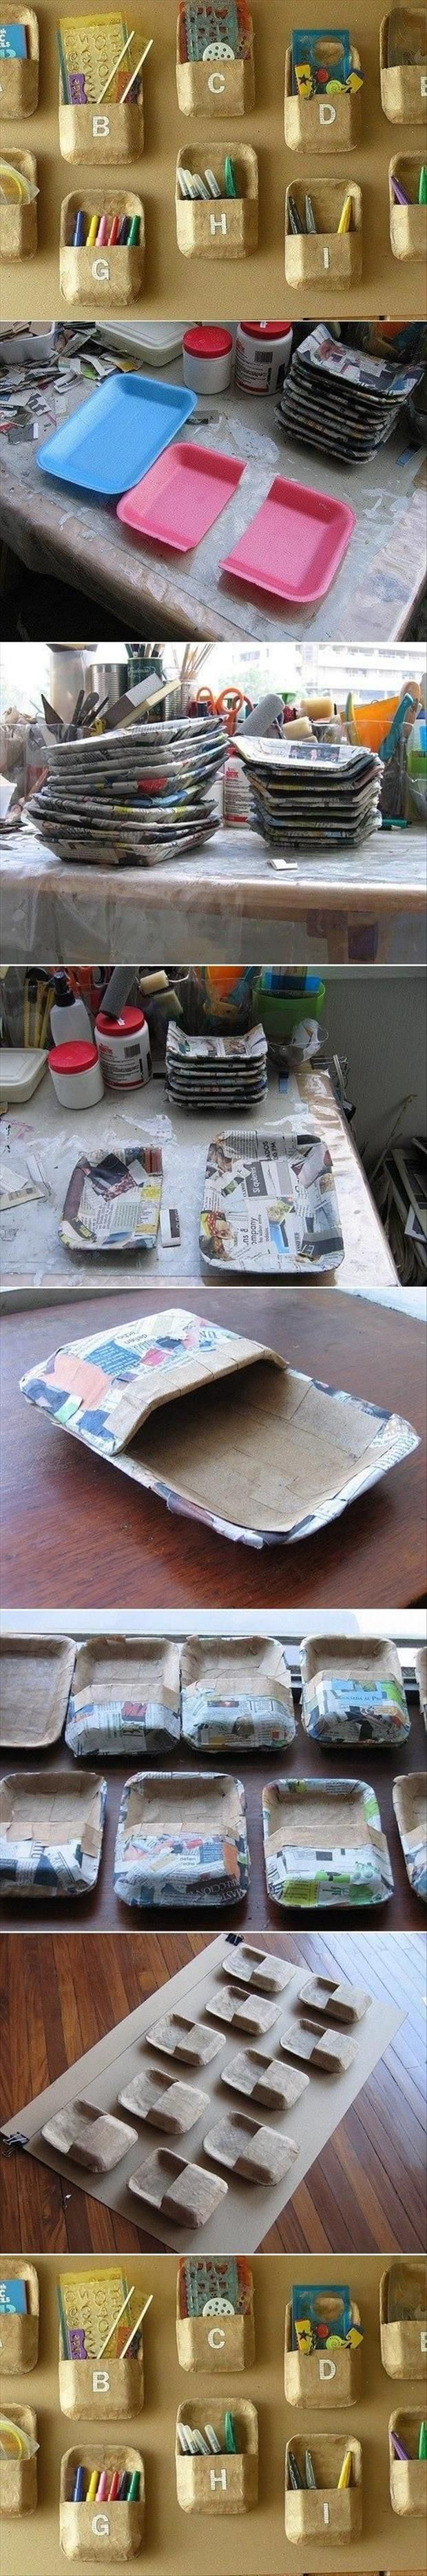 Do it yourself craft ideas 75 pics craft crafty and storage do it yourself craft ideas 75 pics solutioingenieria Image collections